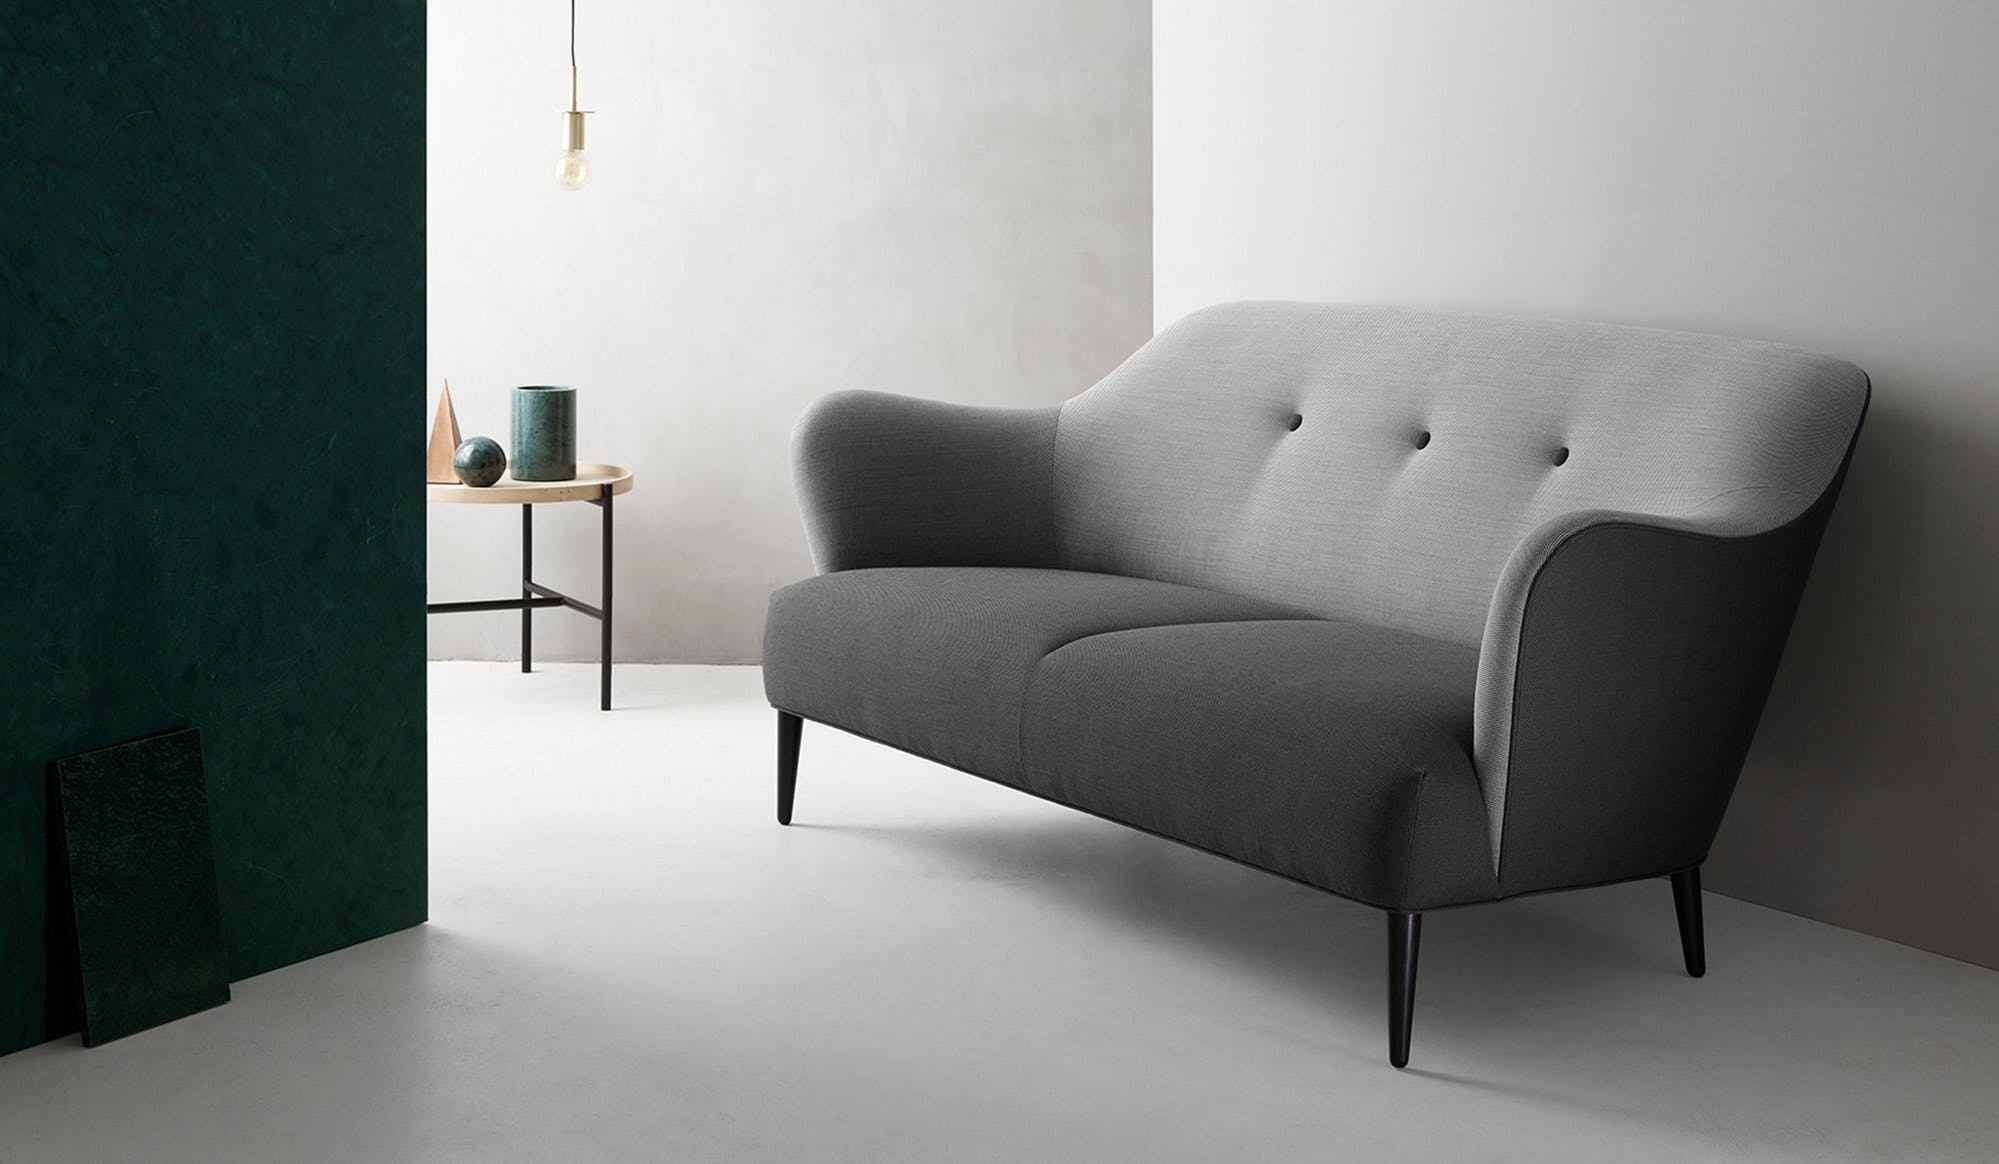 Retro Sofa by WON, now available at Haute Living